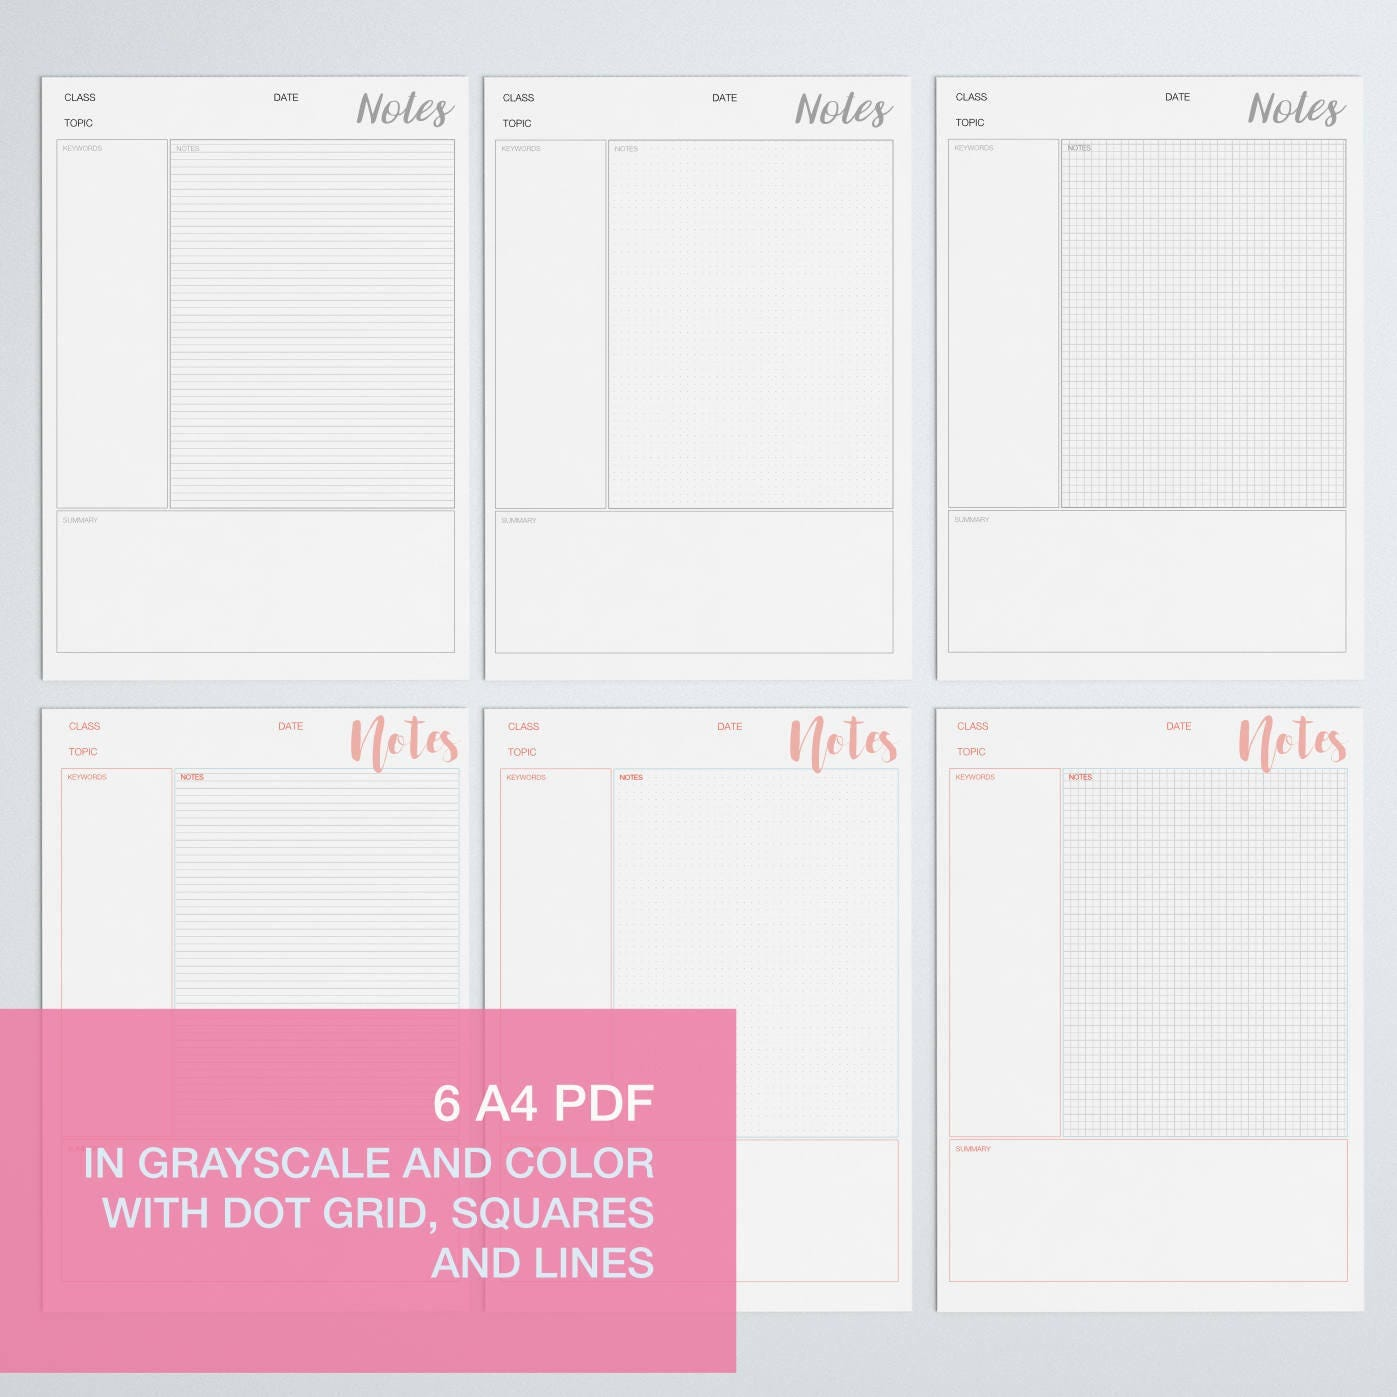 Cornell notes template - printable student notes - student help ...